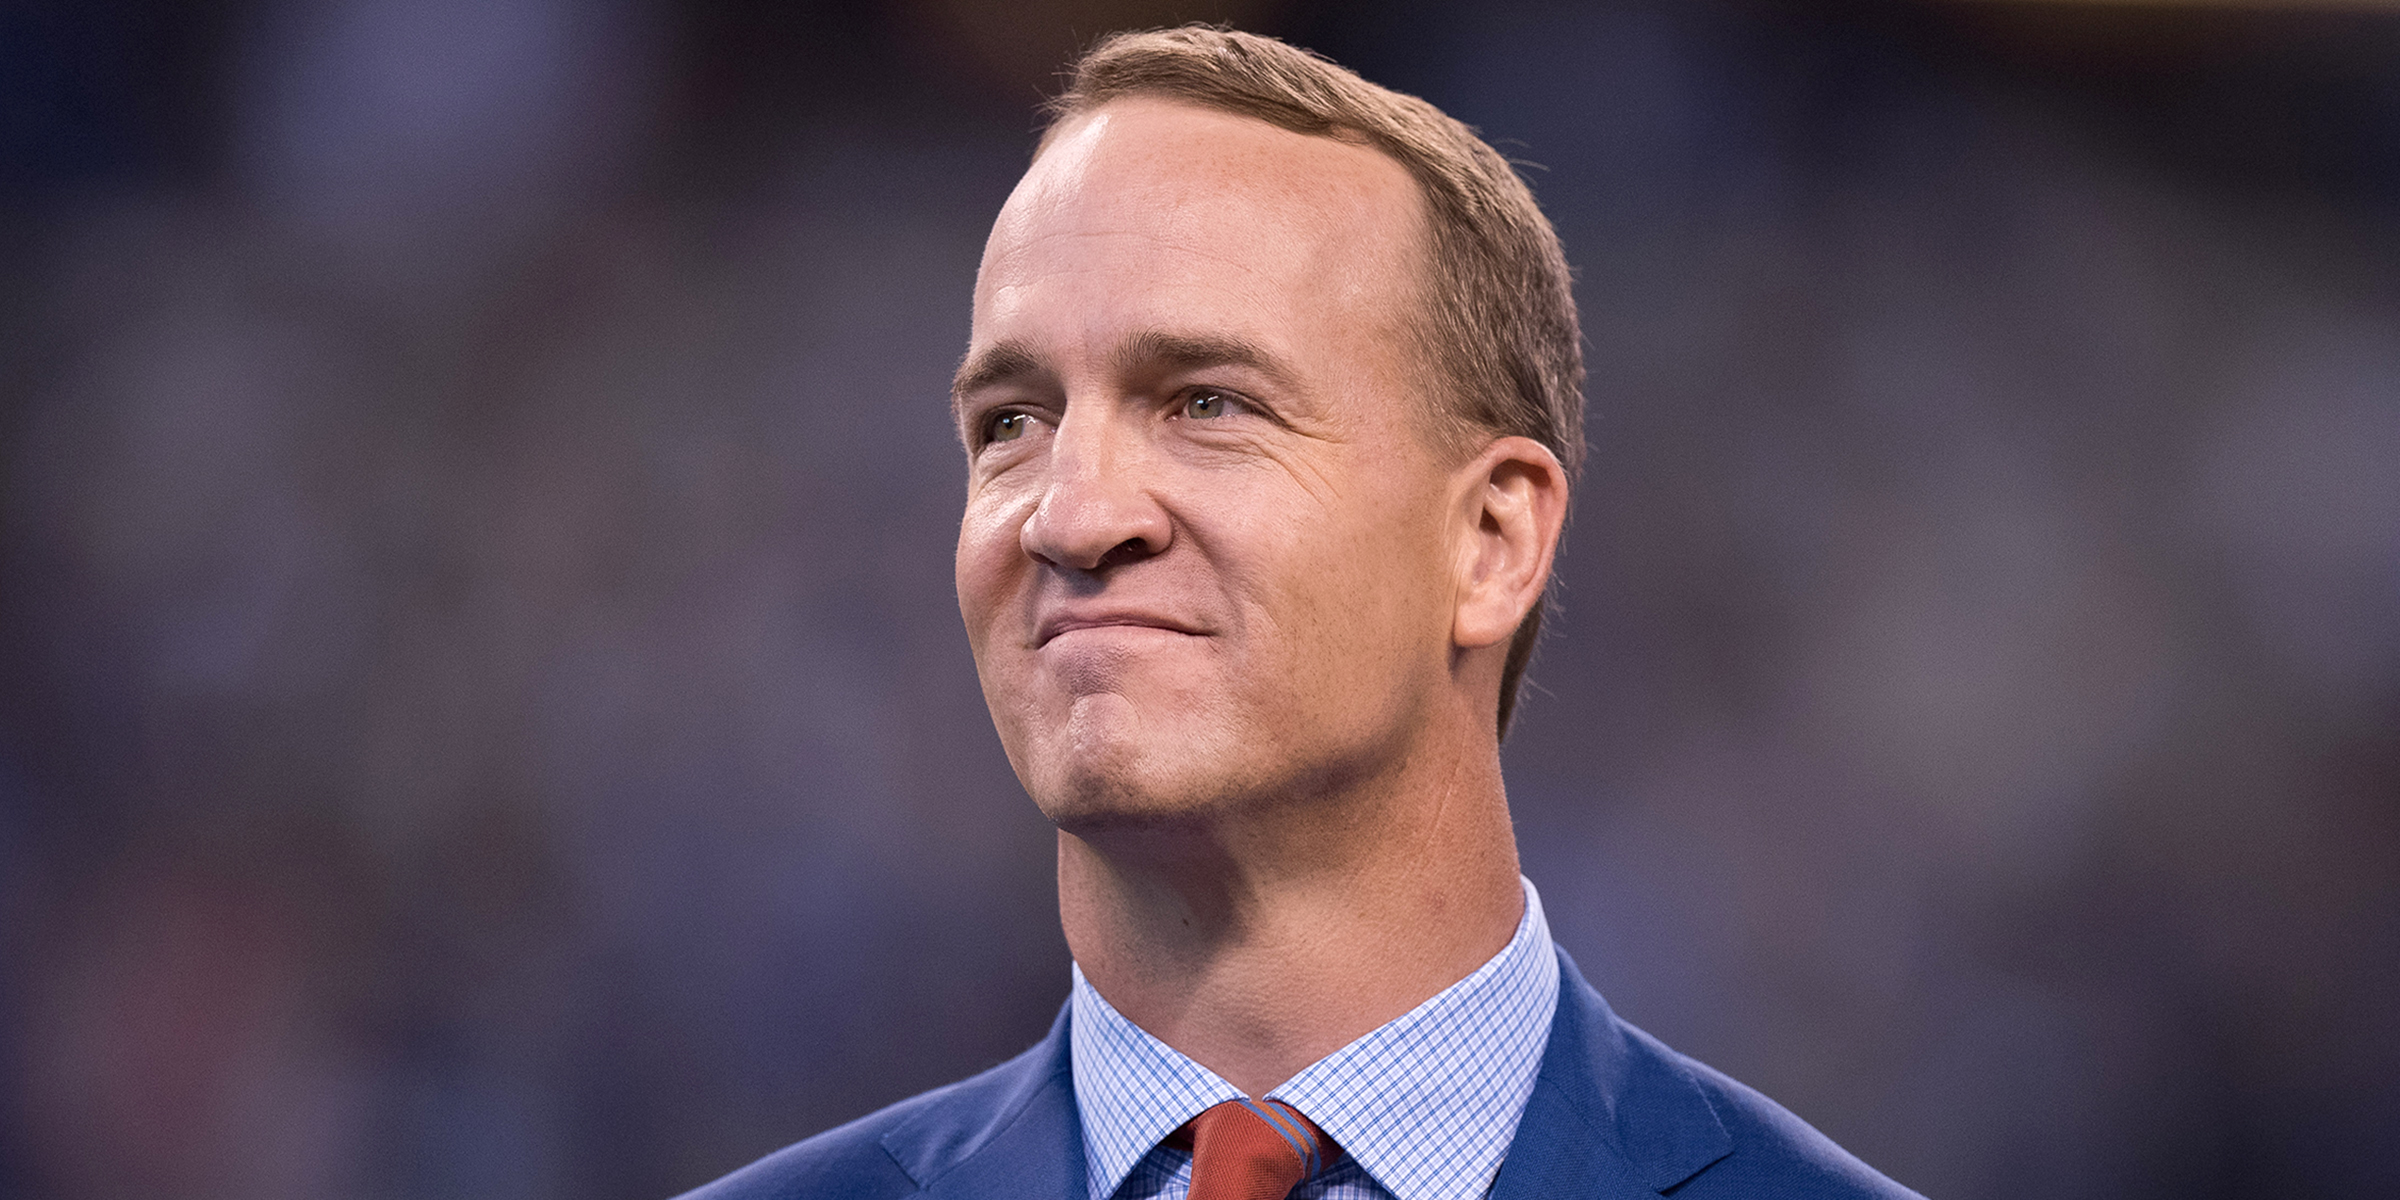 Peyton Manning says he suspects the Patriots bugged his locker